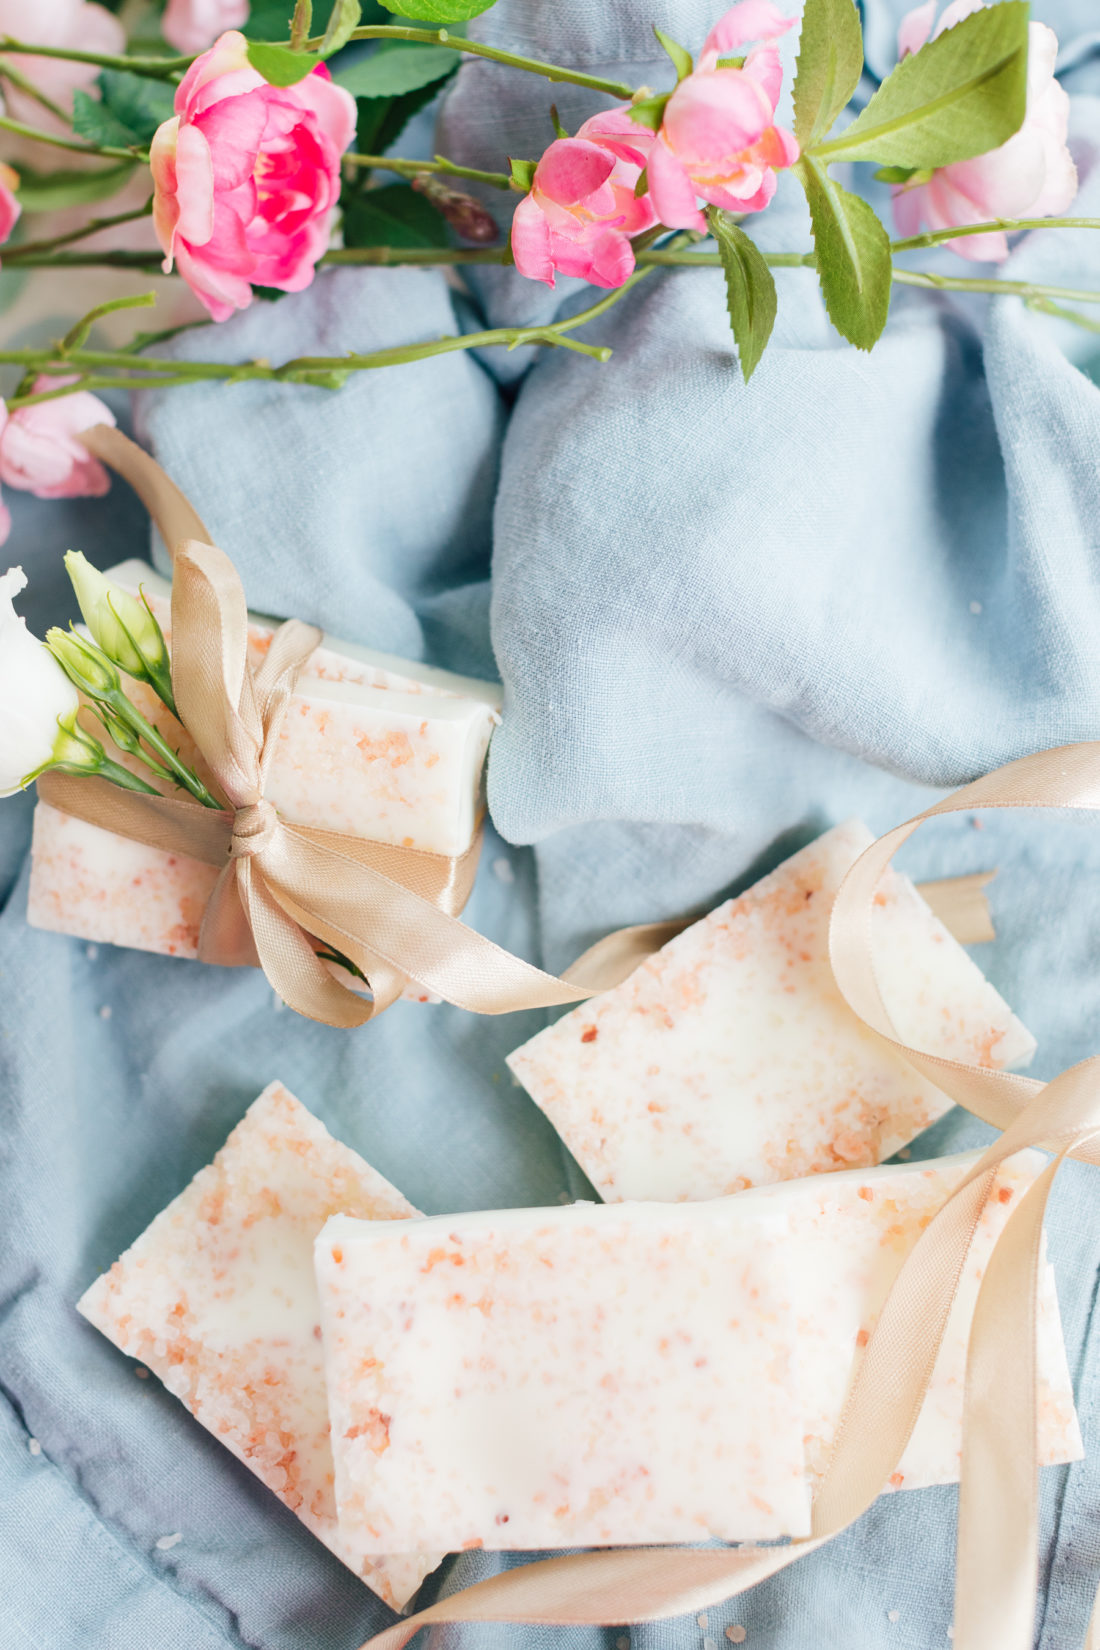 Eva Amurri Martino of Happily Eva After shares a DIY citrus soap bar craft